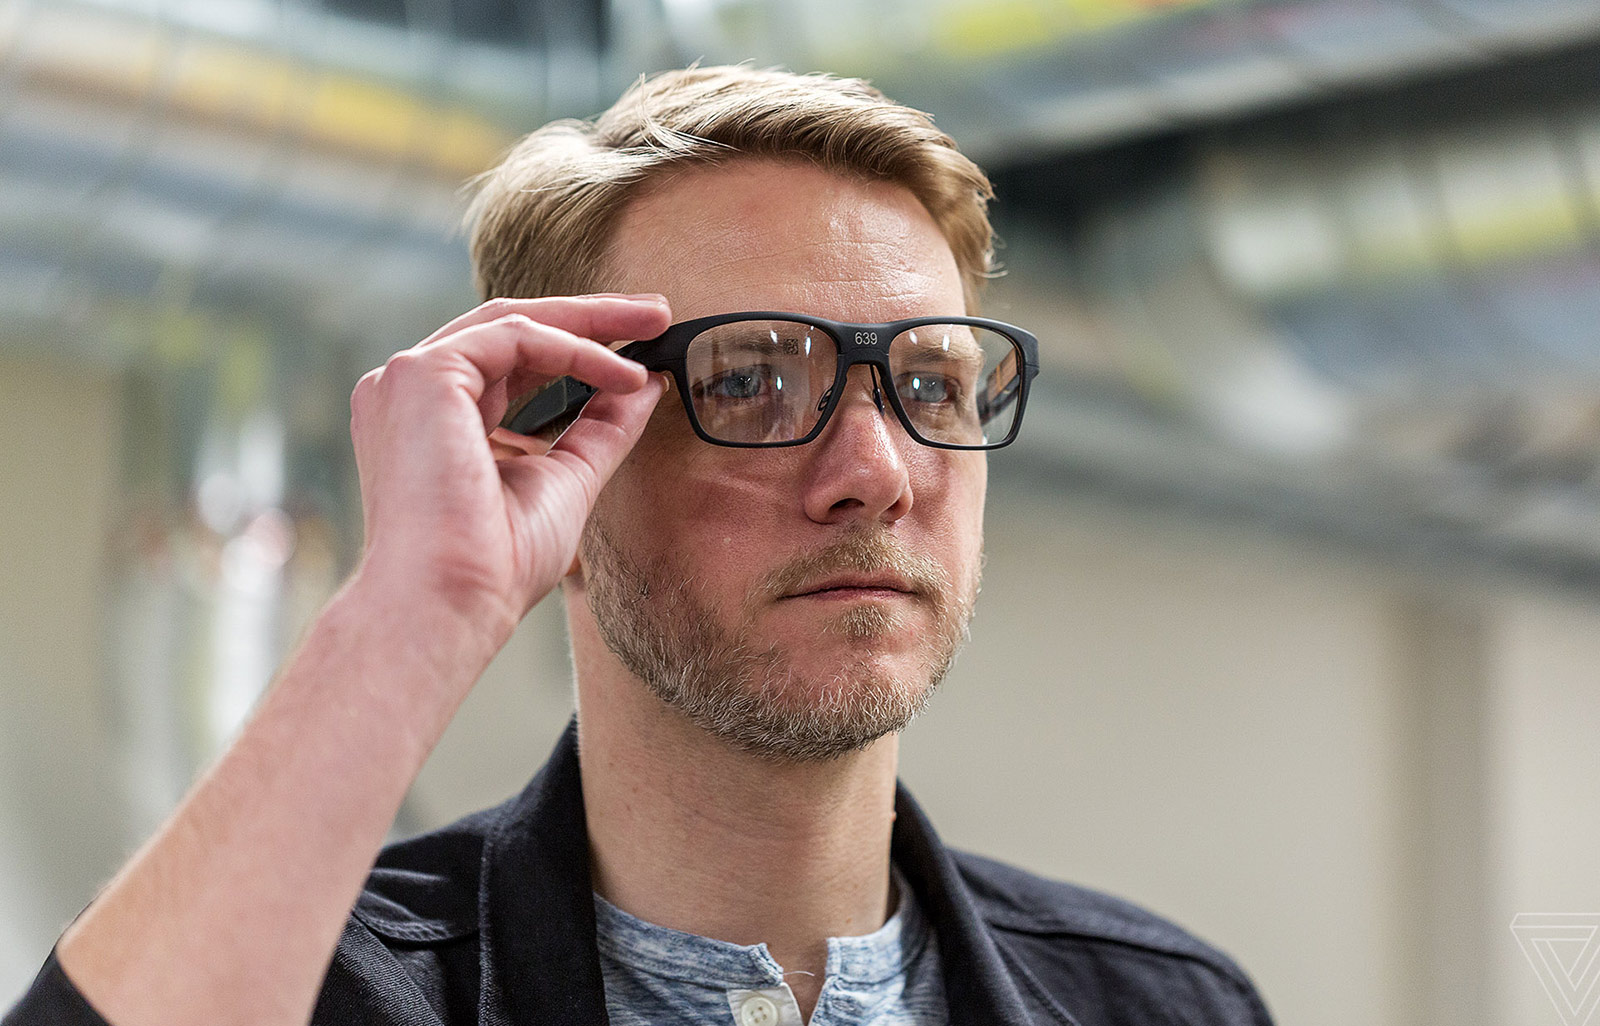 Vaunt smart glasses.